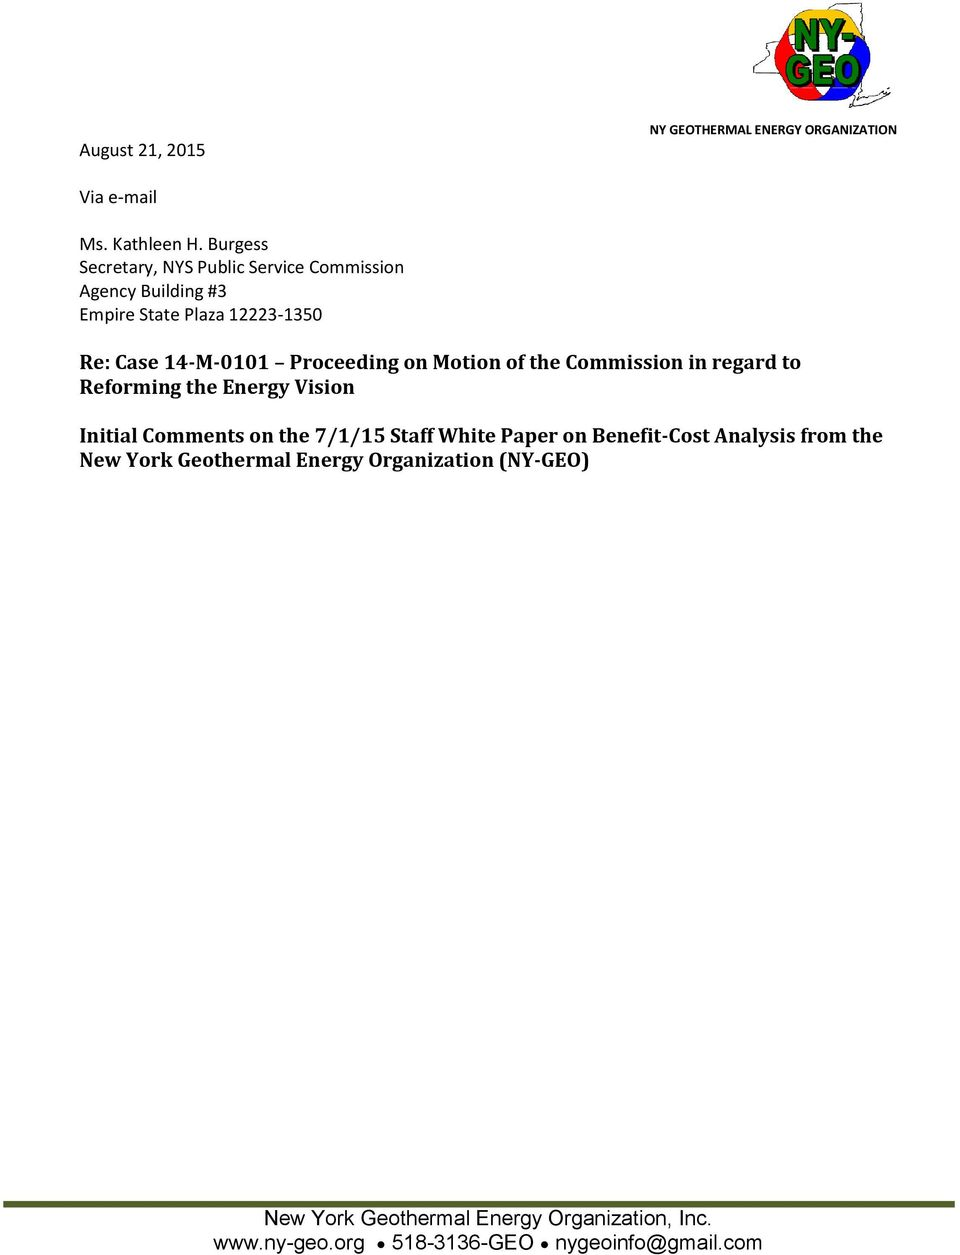 Proceeding on Motion of the Commission in regard to Reforming the Energy Vision Initial Comments on the 7/1/15 Staff White